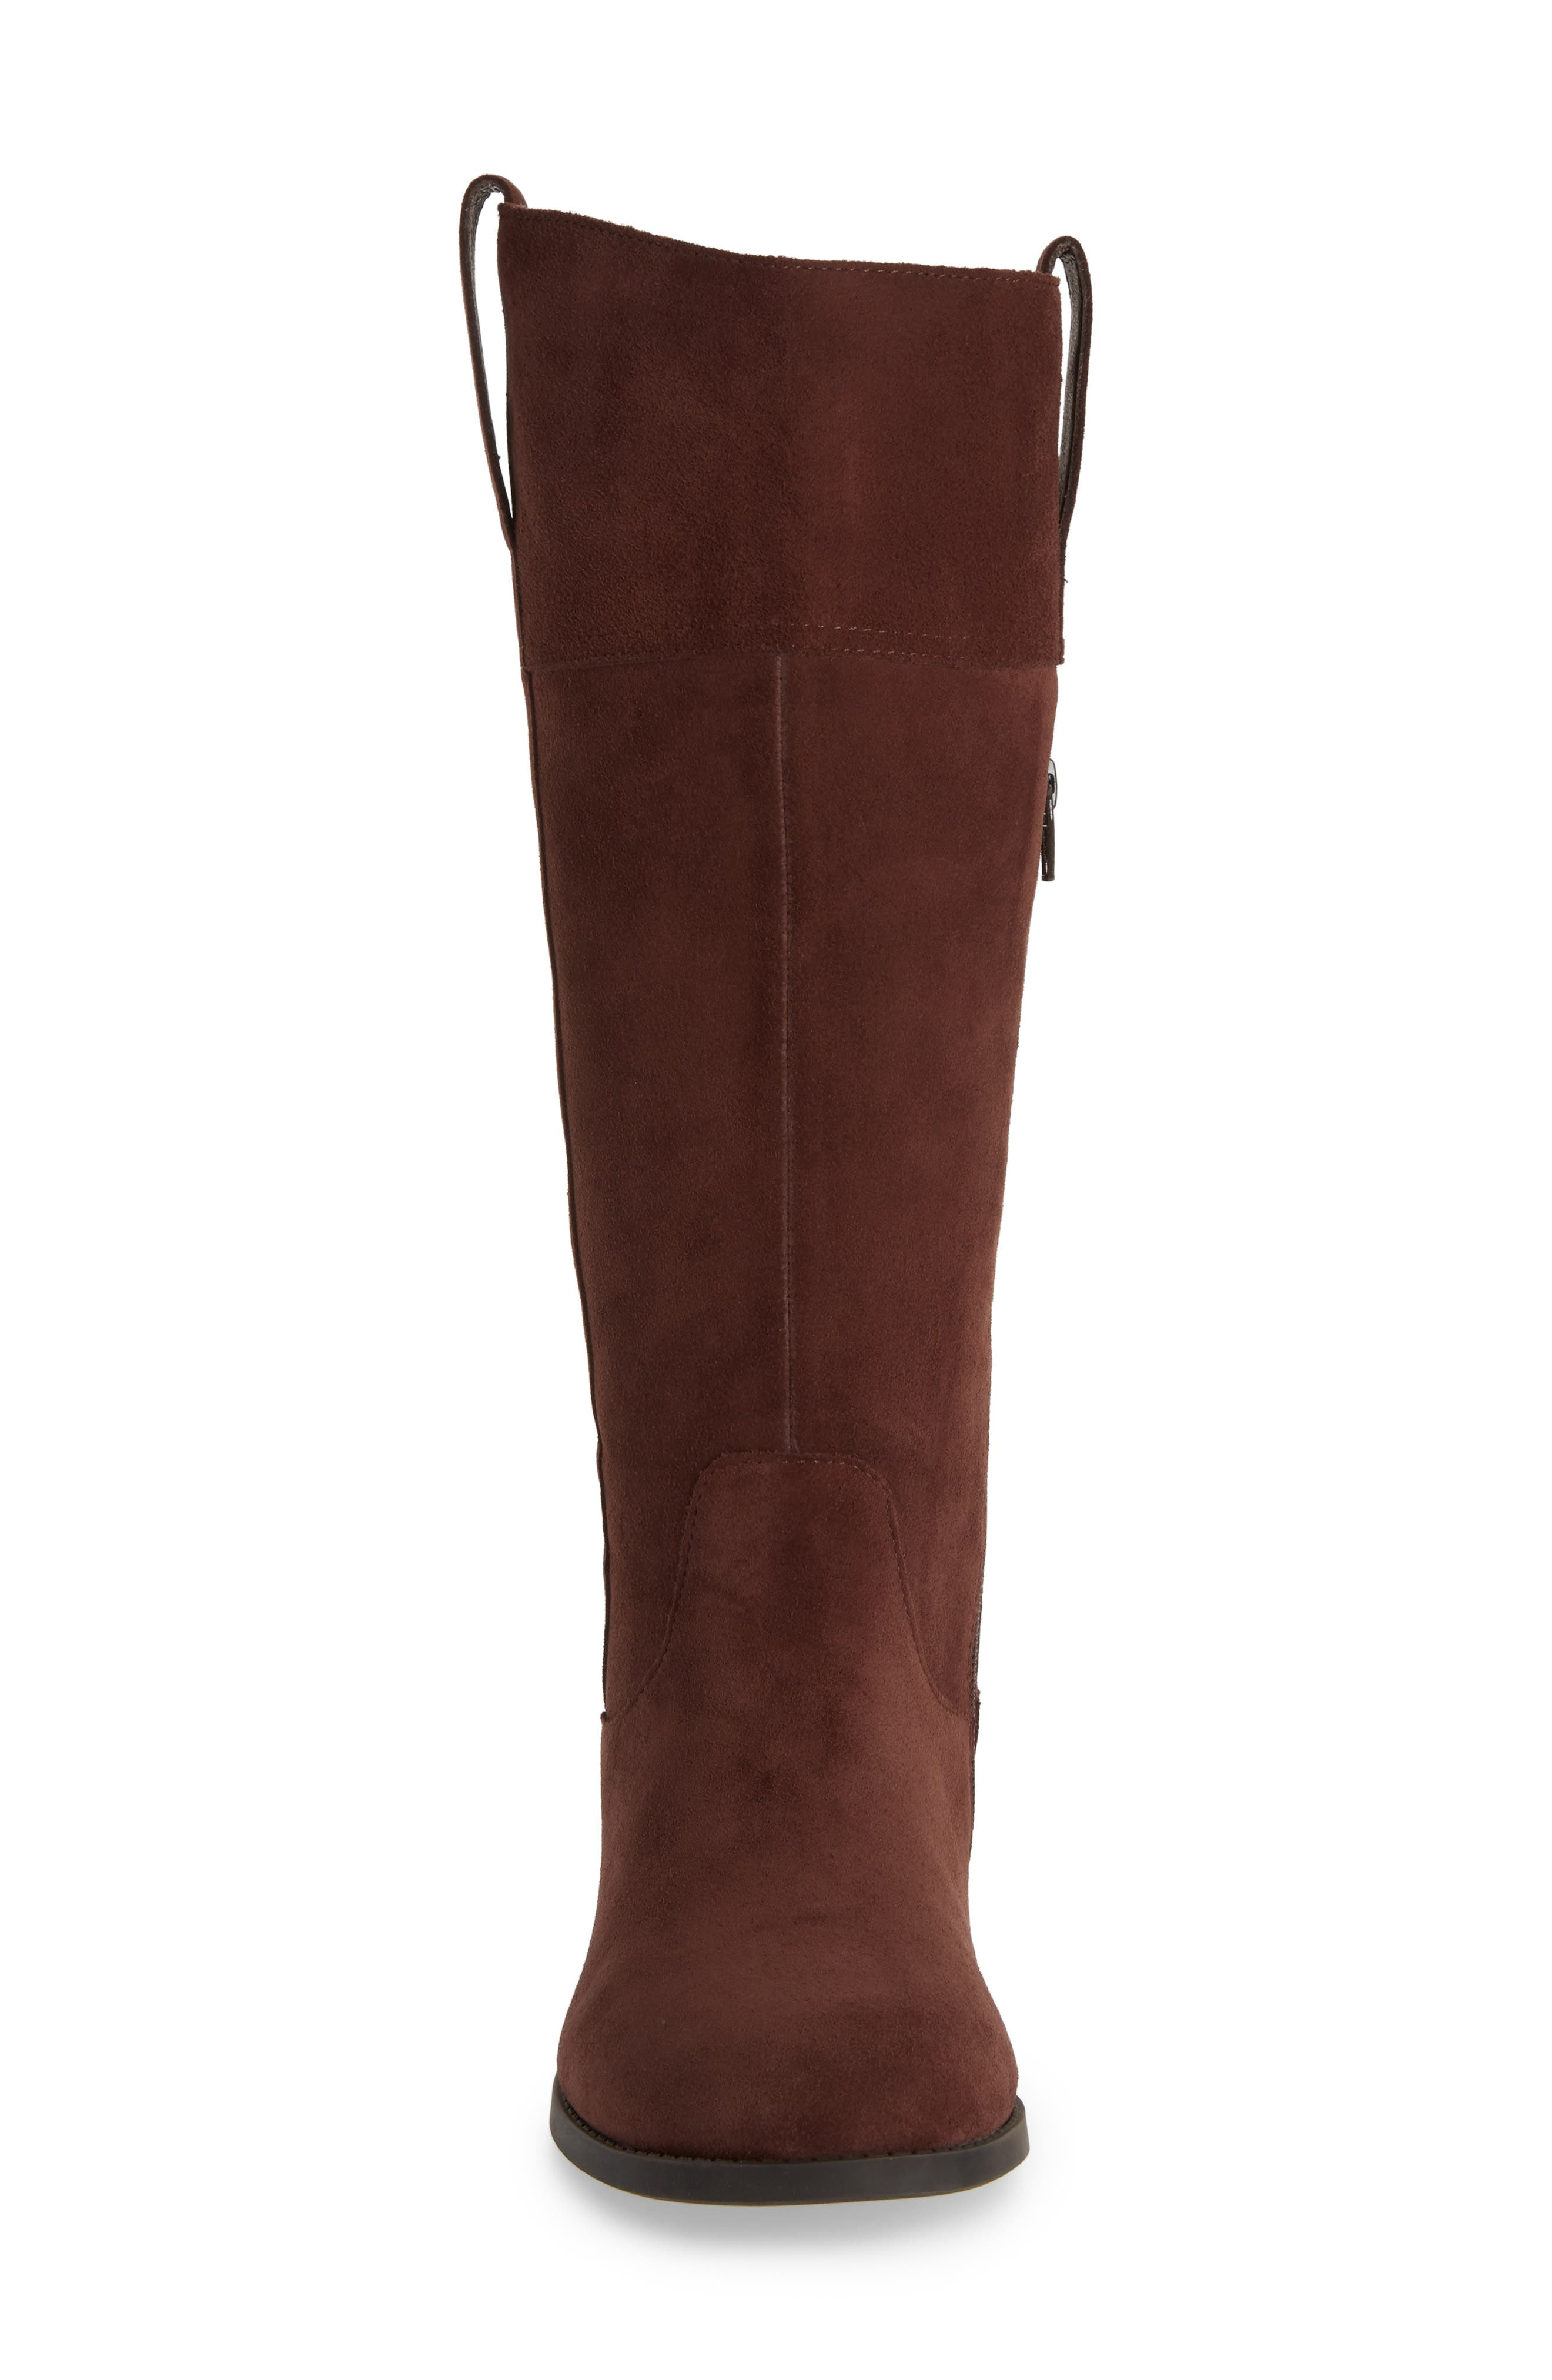 Downing Boot,                             Alternate thumbnail 4, color,                             CHOCOLATE SUEDE